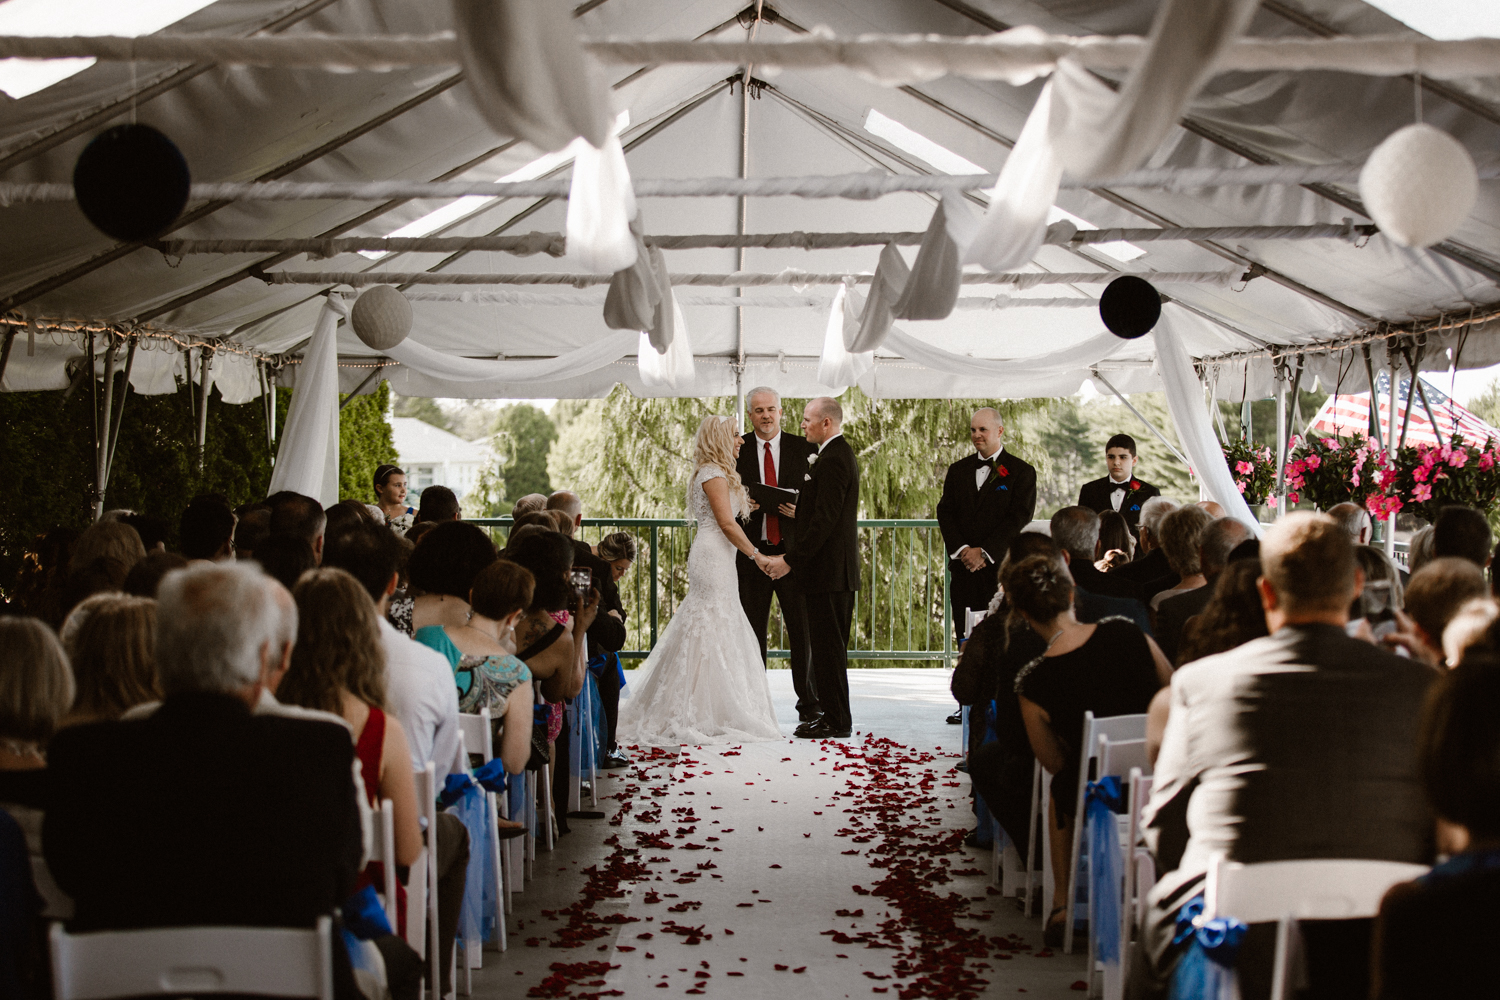 kirkbrae_country_club_fourth_of_july_roses_Red_blue_ceremony_tent_summer_connecticut_rhode_island_massachusetts_new_england_wedding_photography_photographer_natural_laid_back_fun_light_engagement_session.jpg